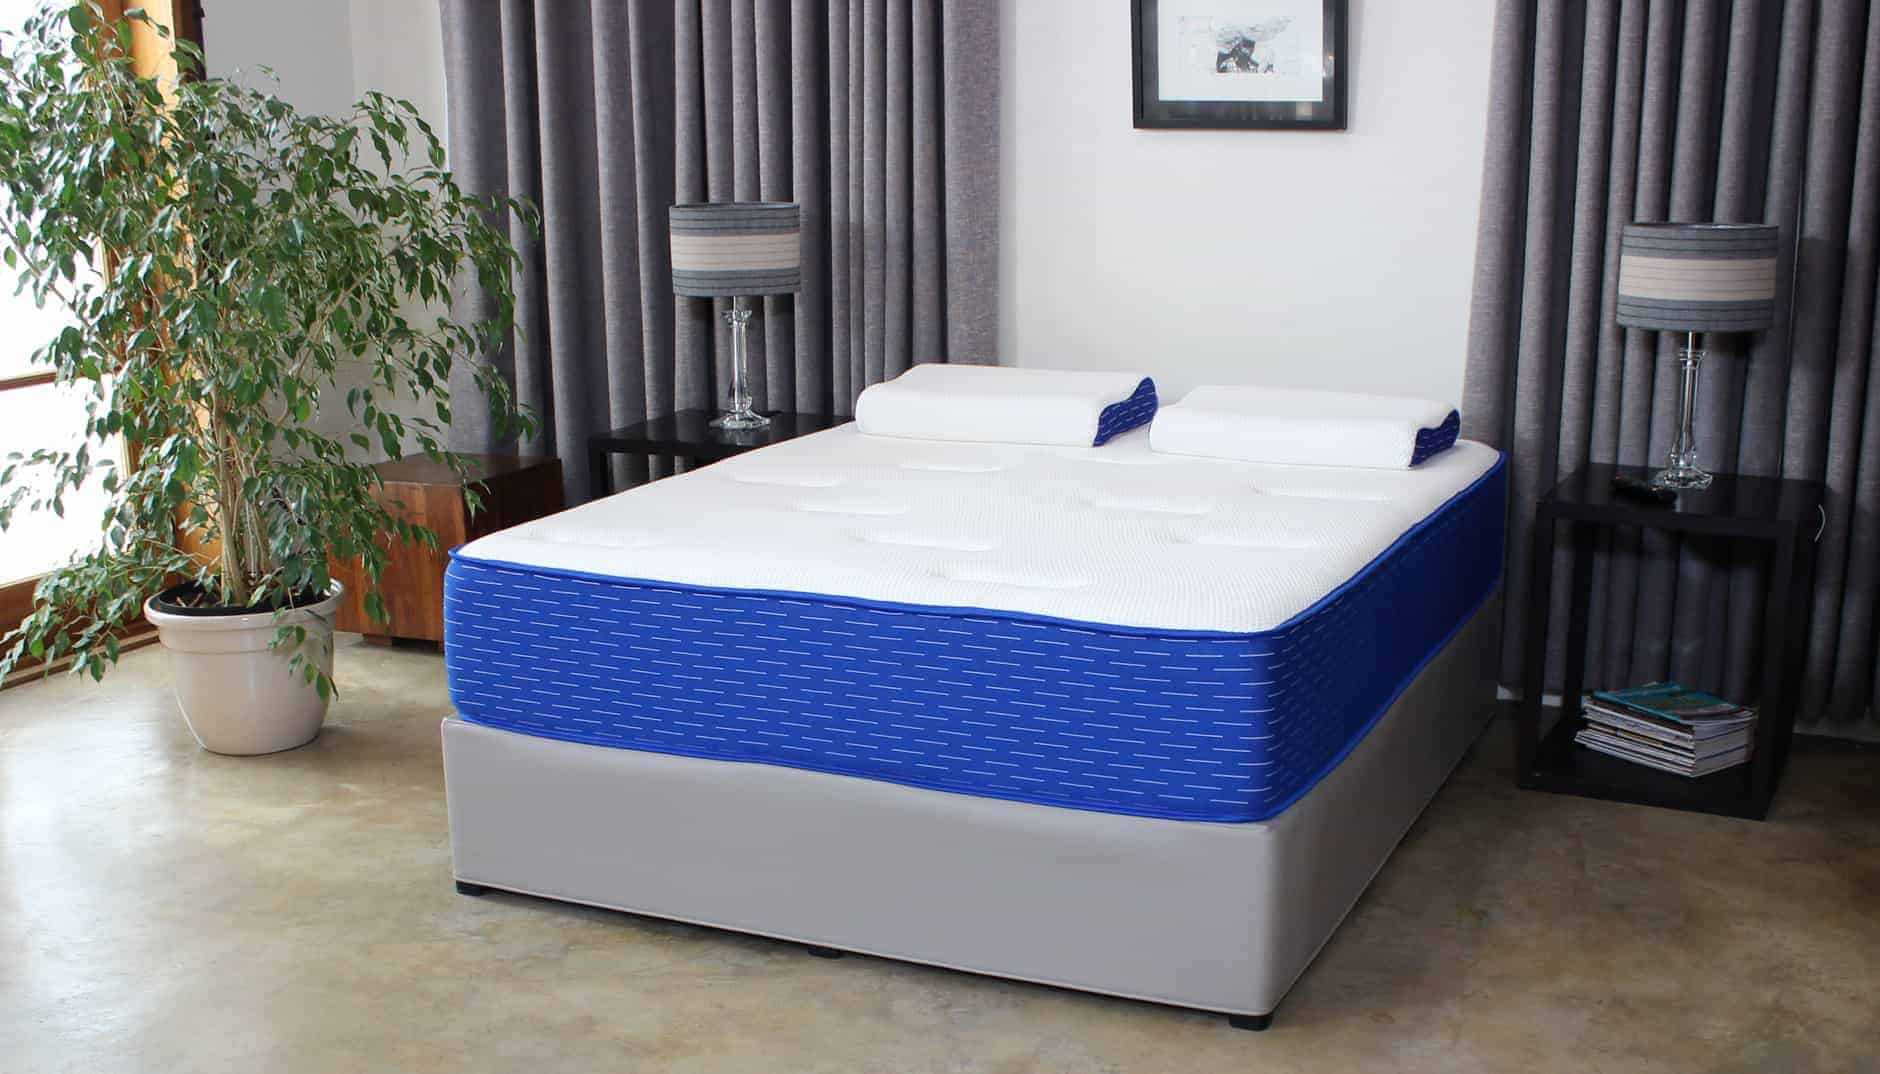 Genie queen size bed